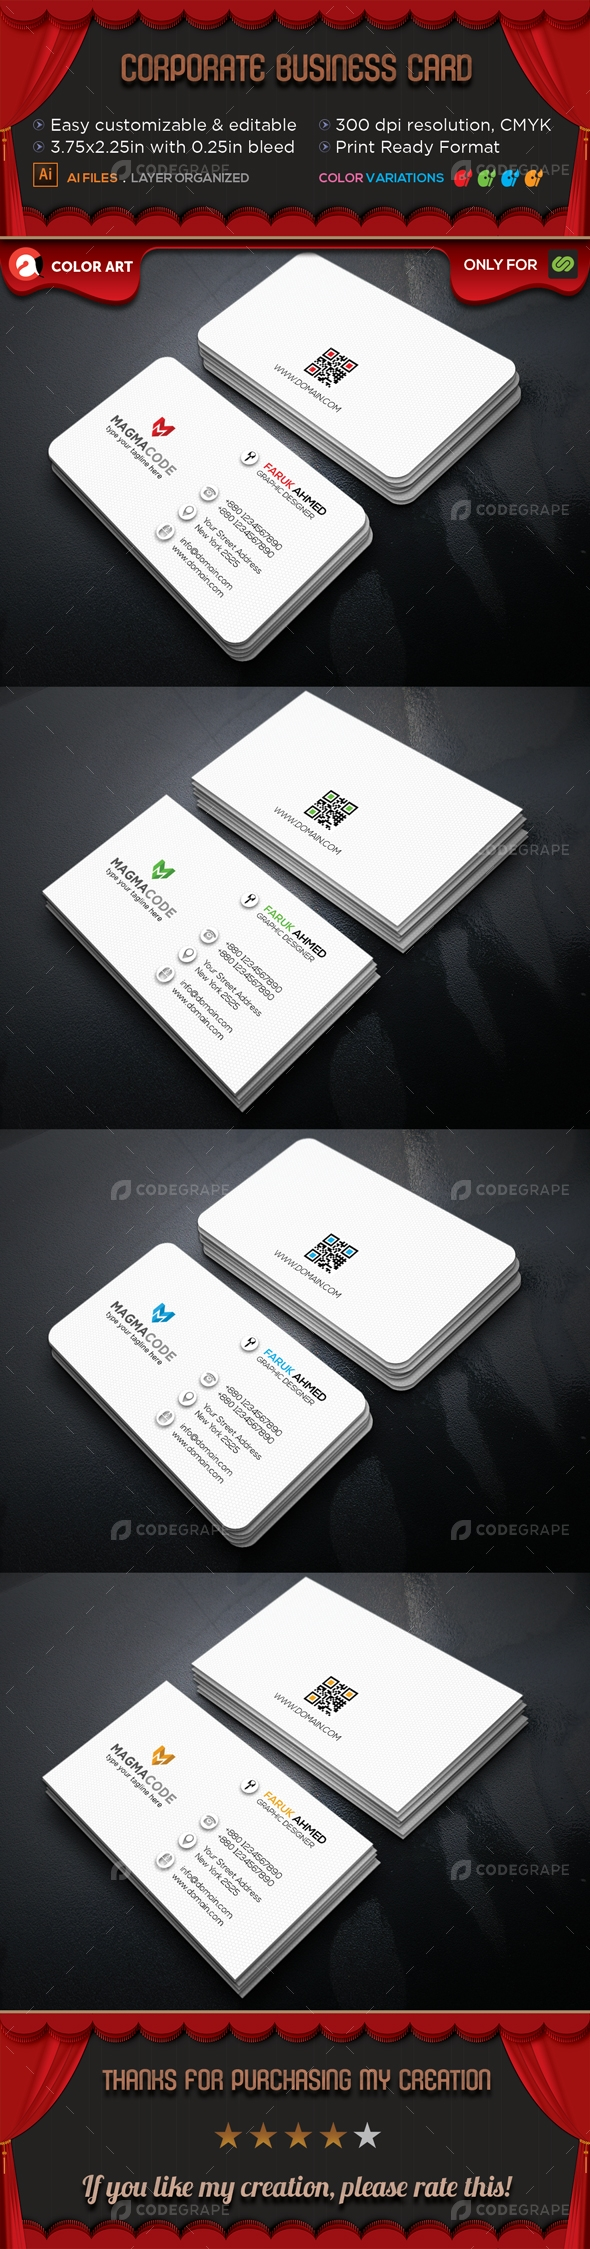 Corporate Business Card V.11